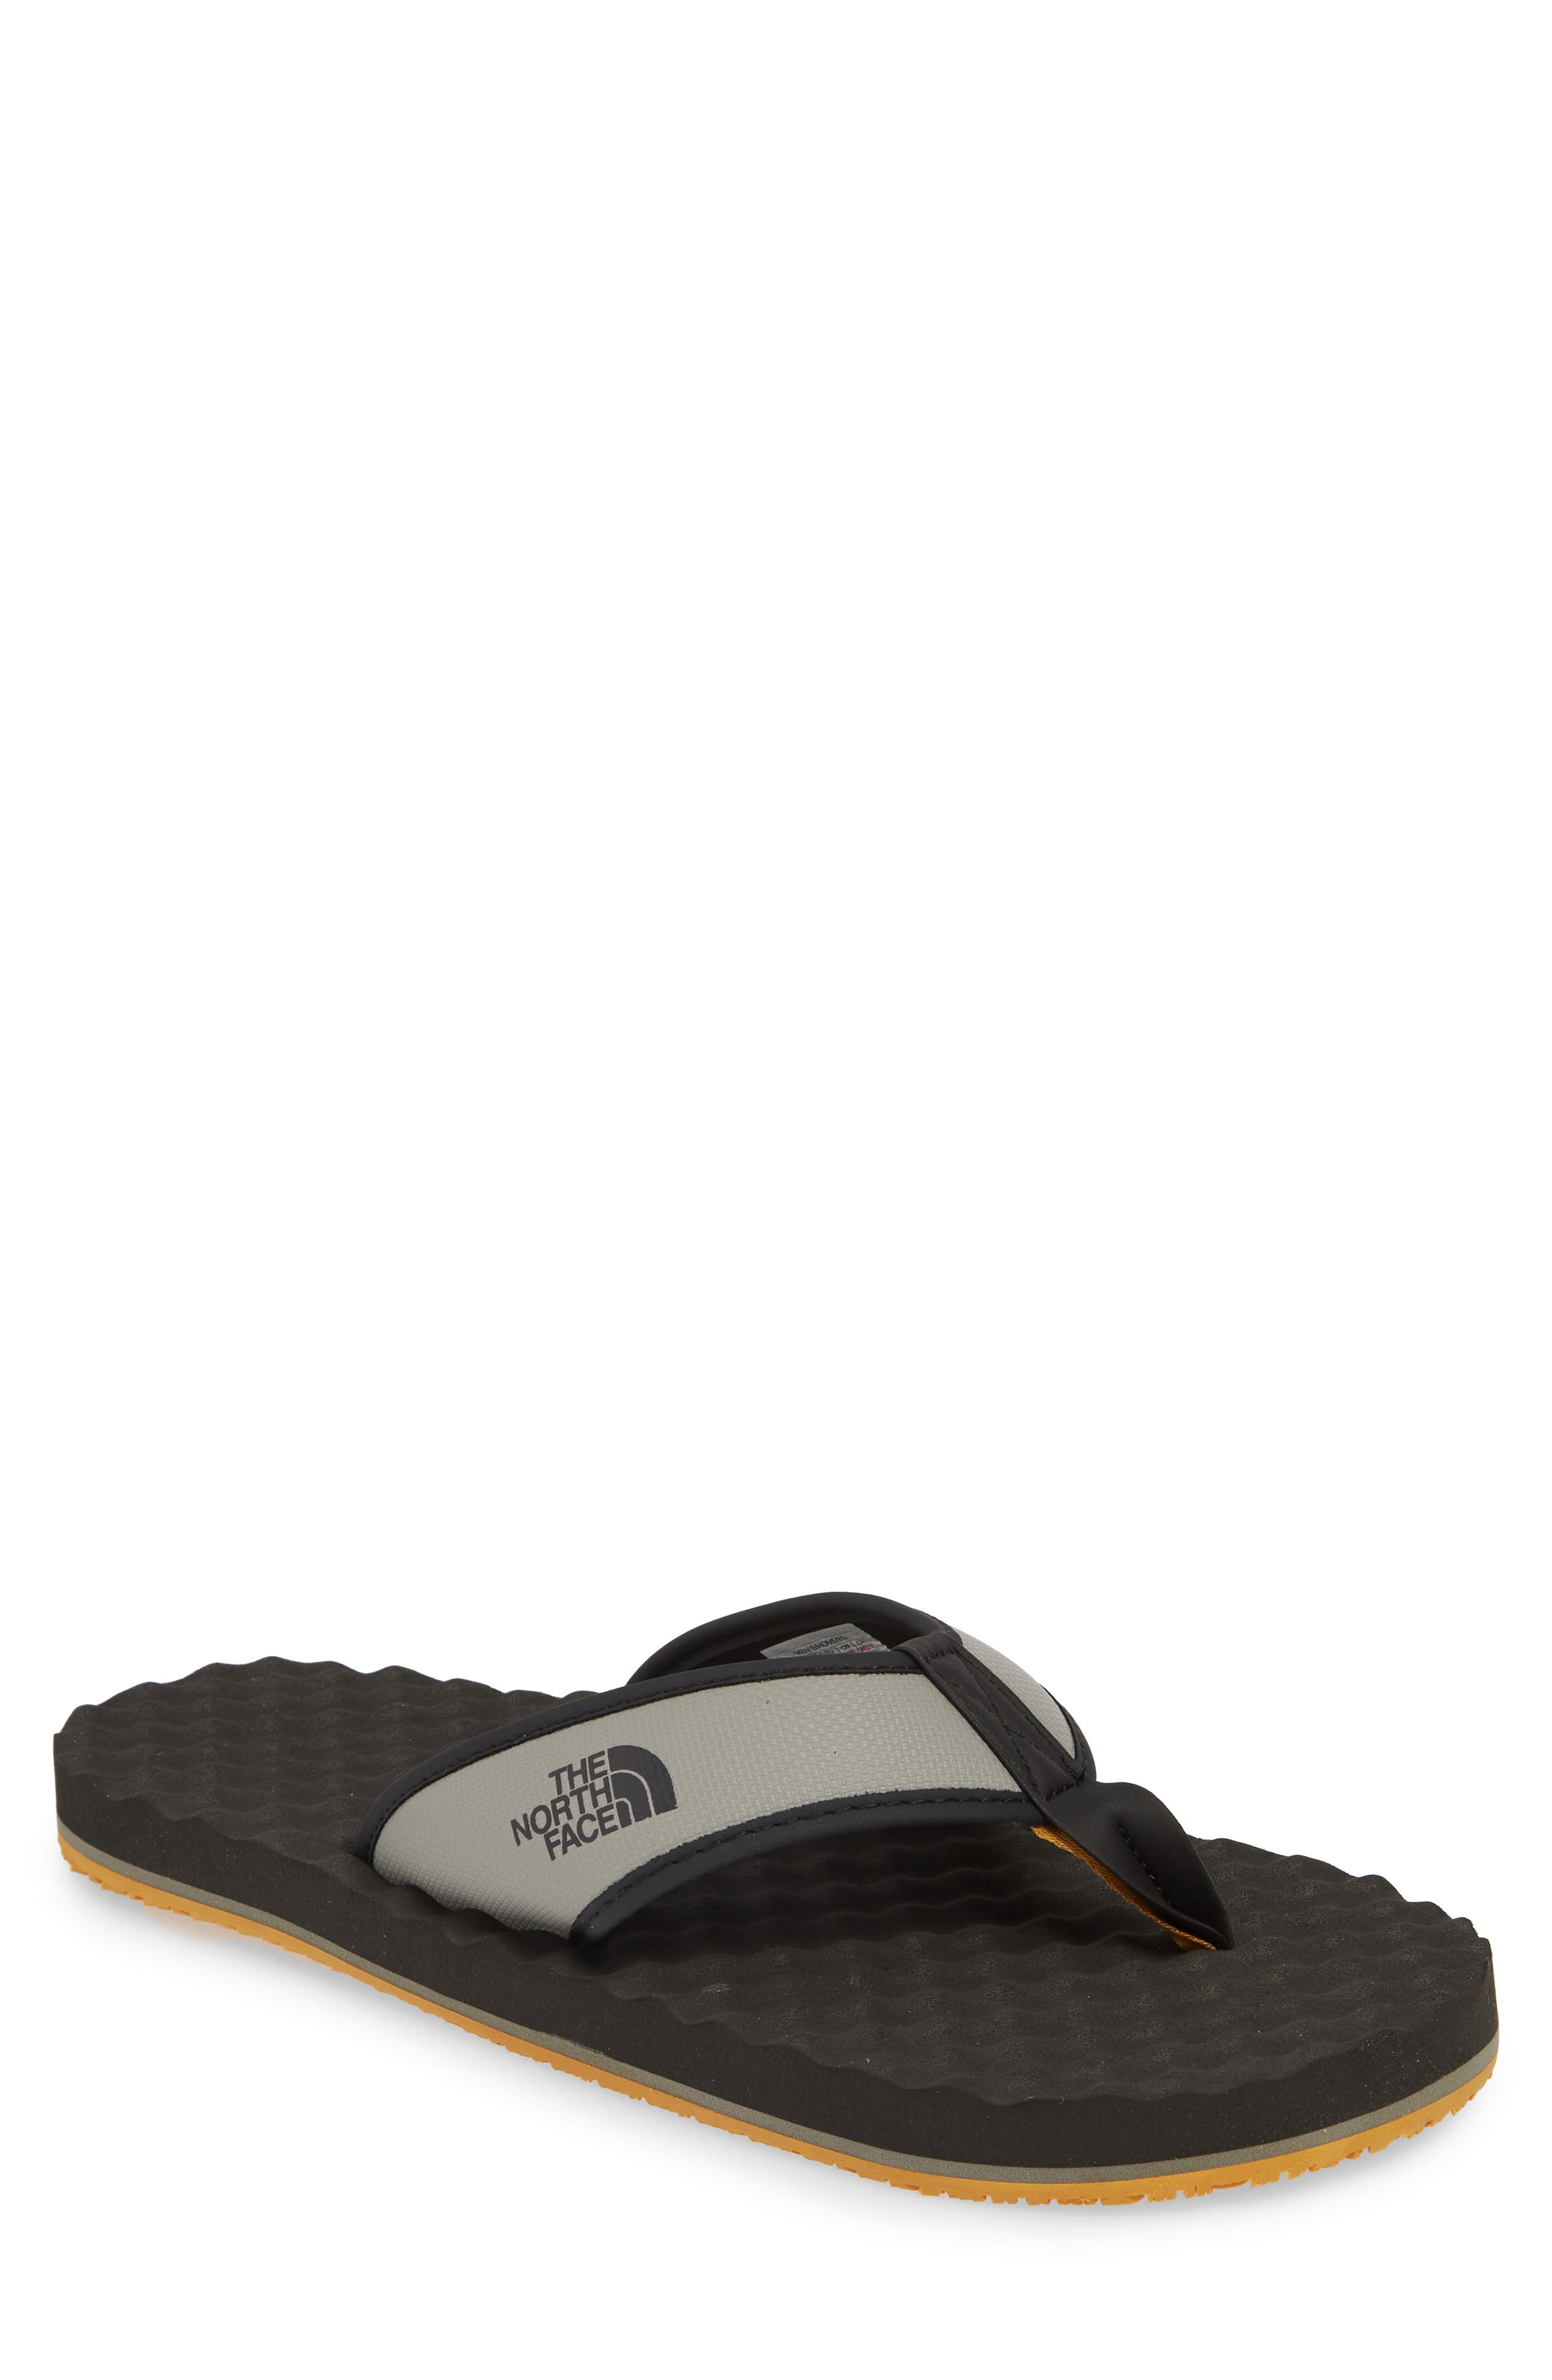 THE NORTH FACE 'Base Camp' Water Friendly Flip Flop, Main, color, 021